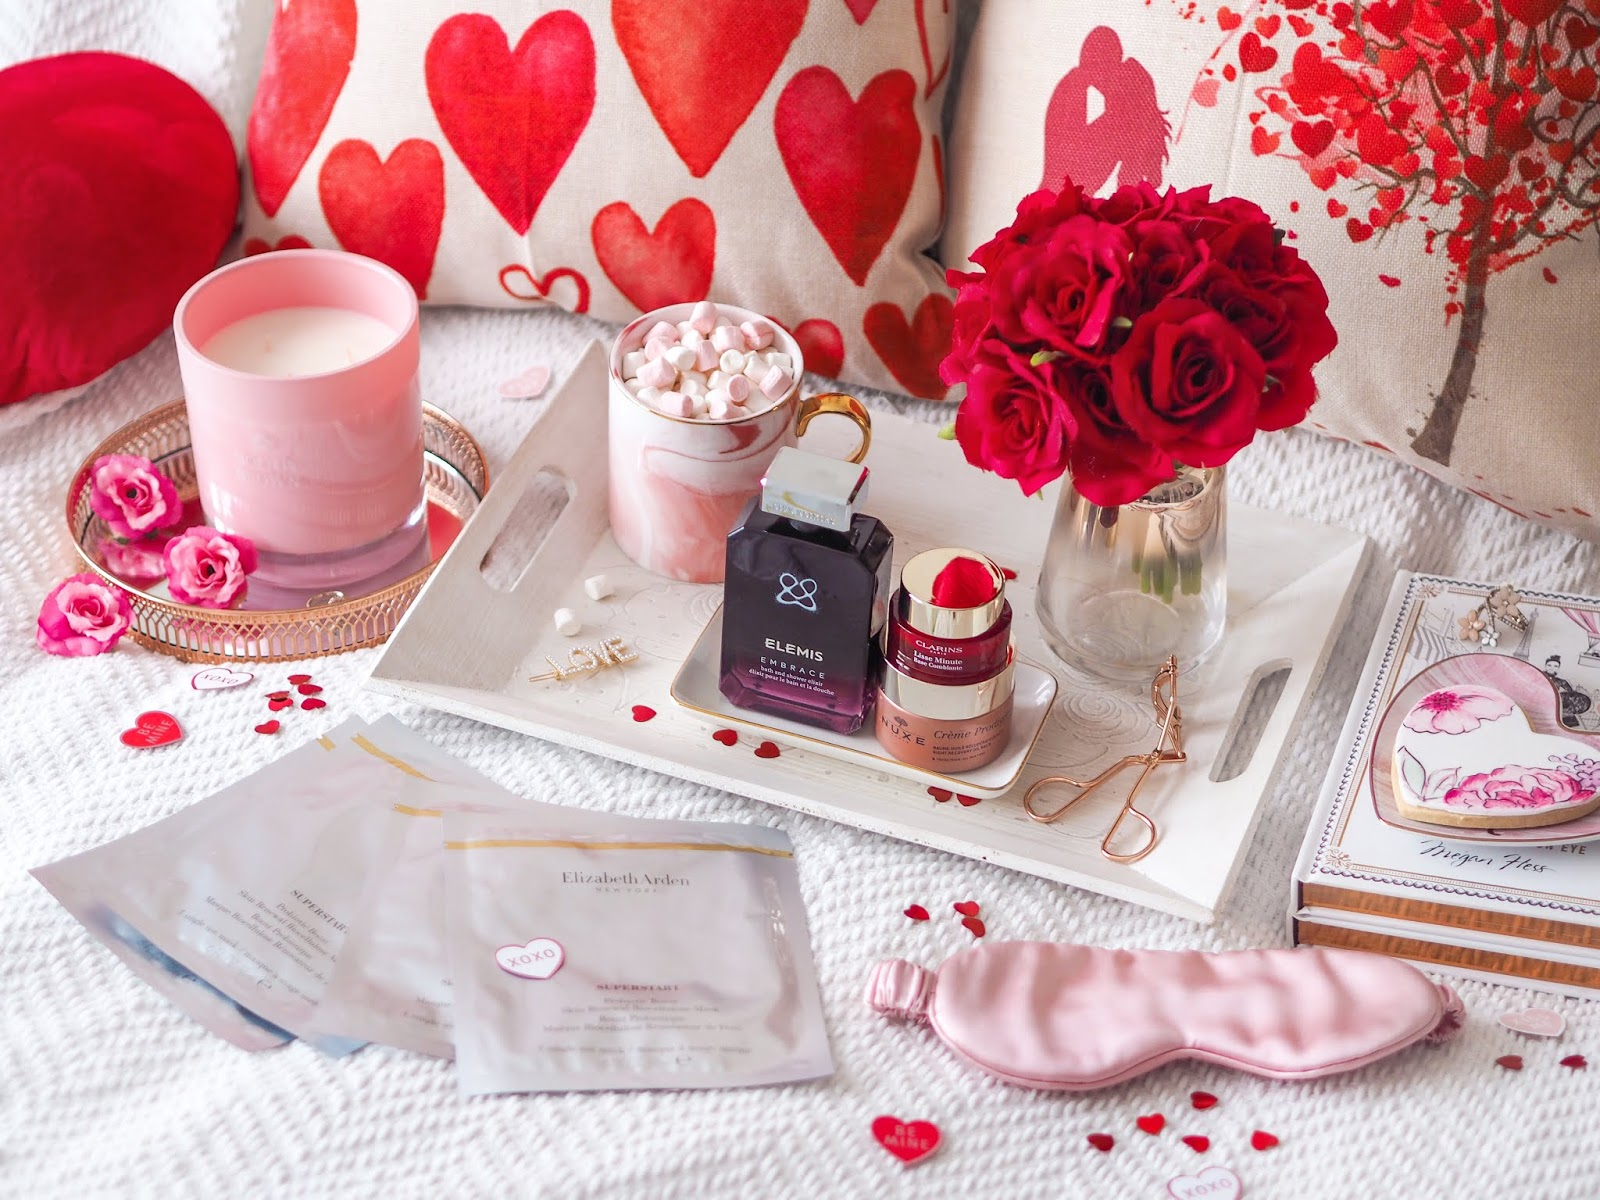 5 Tips For The Perfect Galentine's Night In, Galentine's Day, Galentine's Night In, Girls Night In, Katie Kirk Loves, UK Beauty Blogger, Skincare, Blogger, Pamper Night, Beauty Products, Fragrance Direct